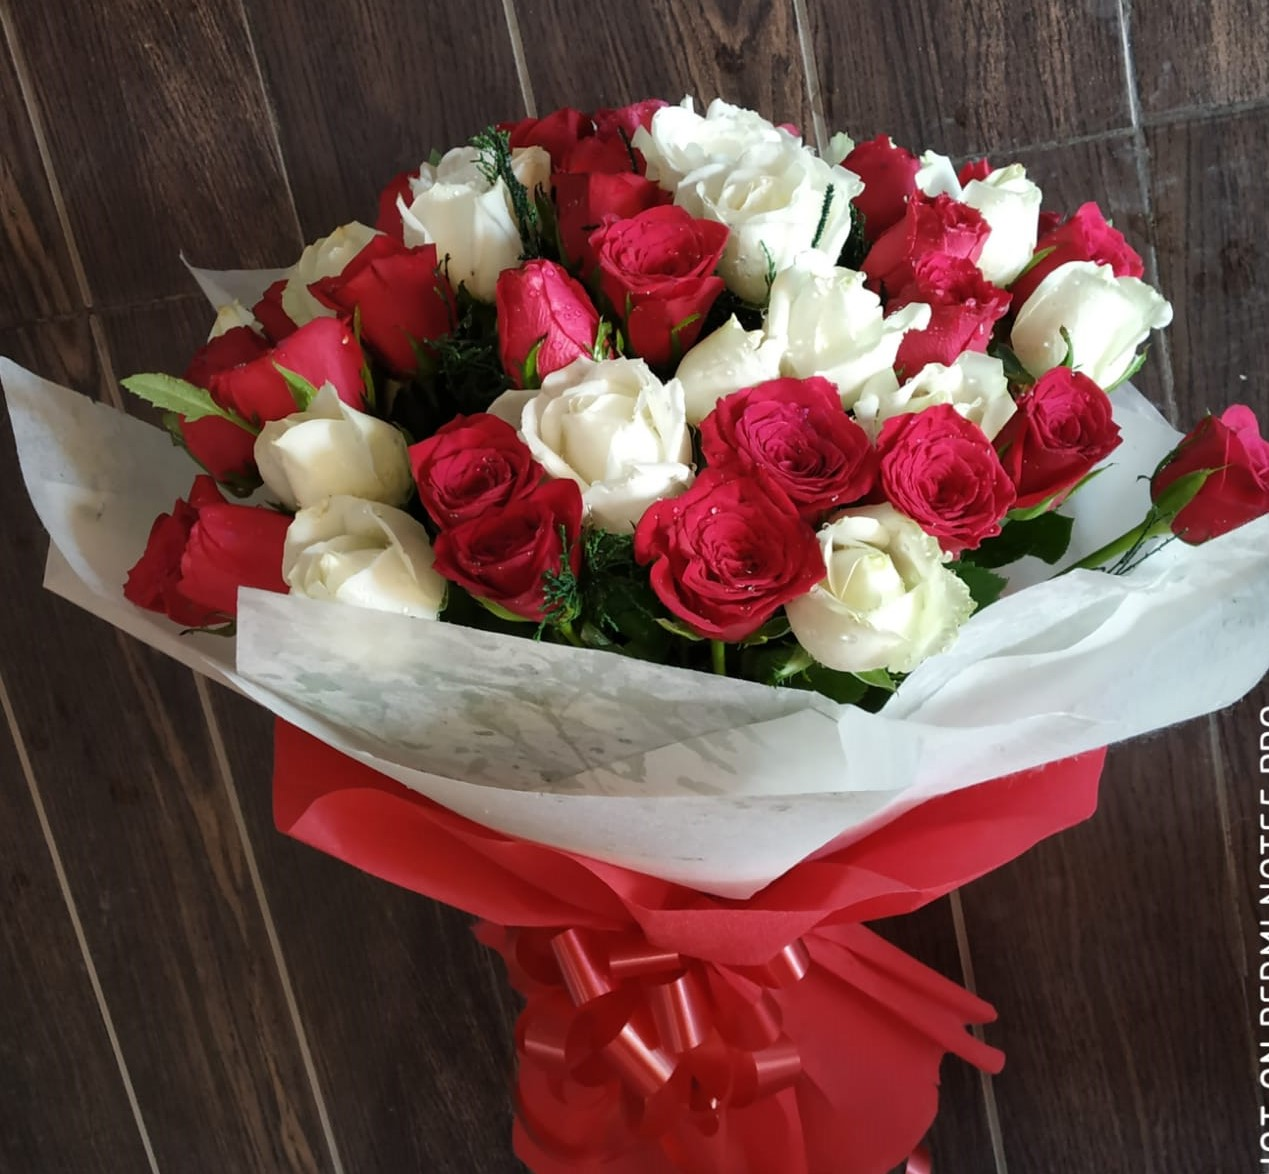 Cake Delivery in Sushant Lok GurgaonRed & White Roses in Duble Layer Packing